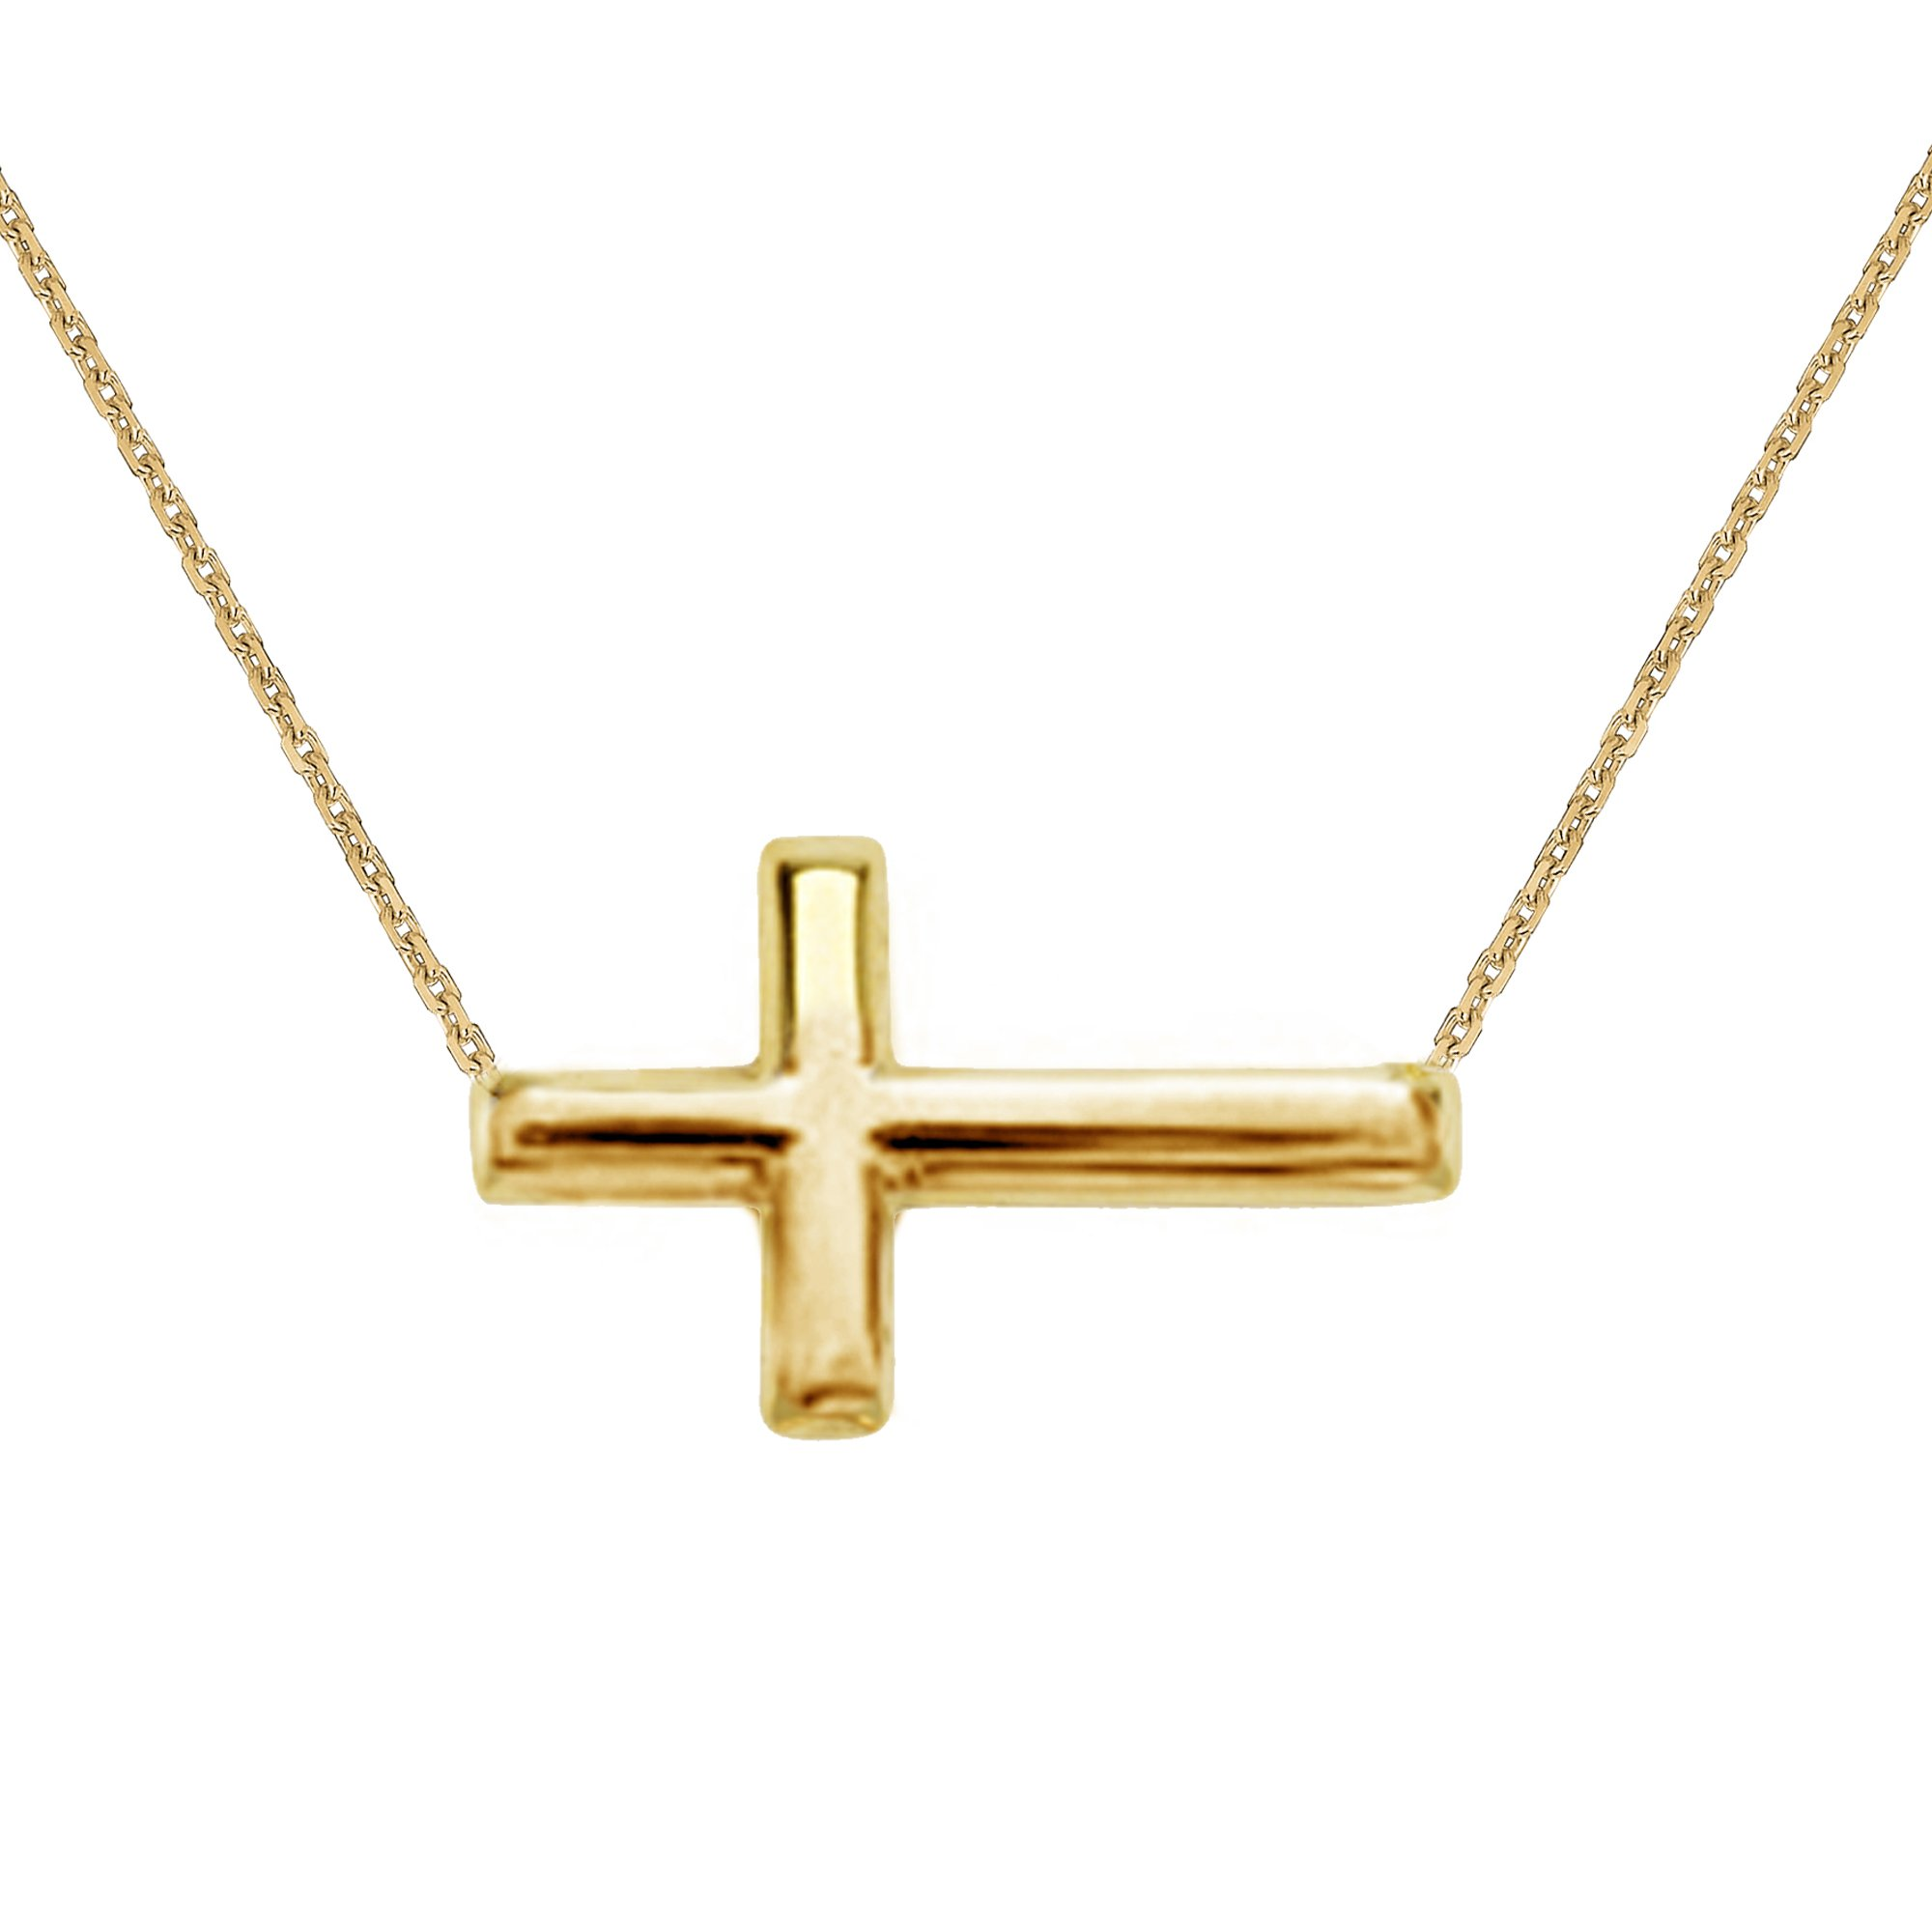 14K Yellow Gold Sideways Cross Necklace Adjustable Chain 16-18 Inches